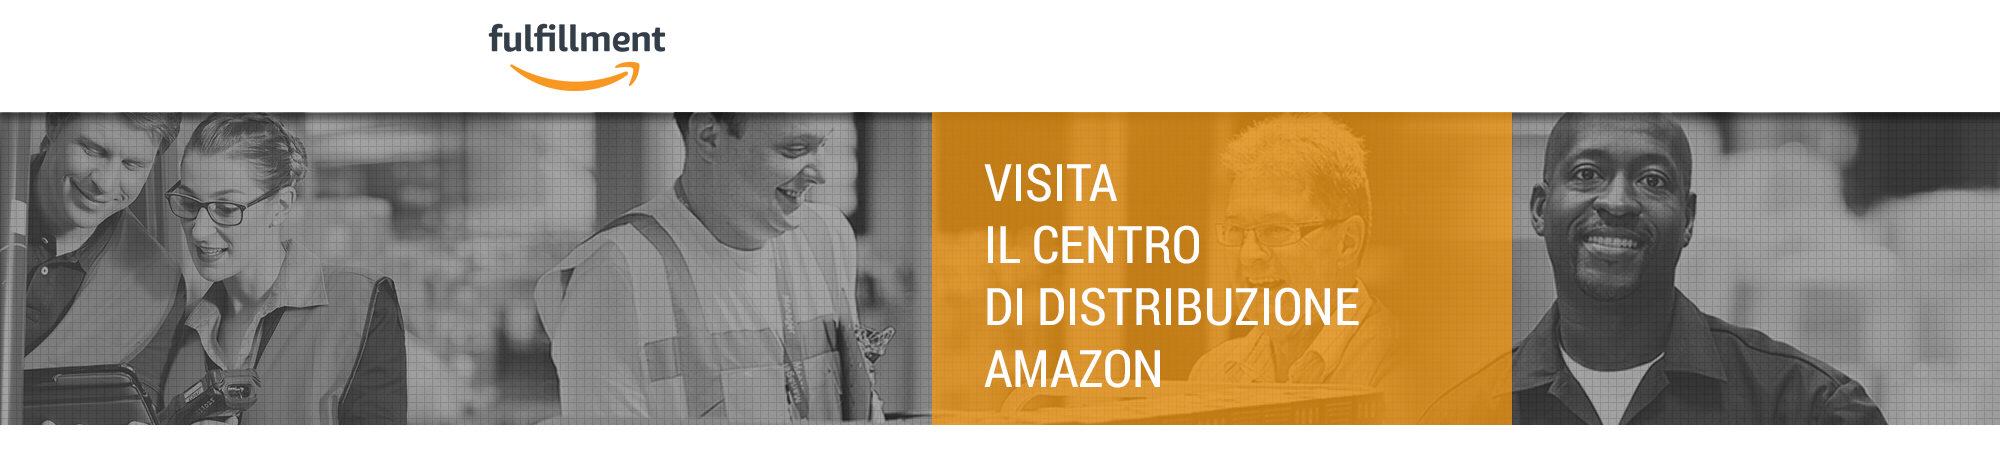 Tour di Amazon di Castel San Giovanni-Italia